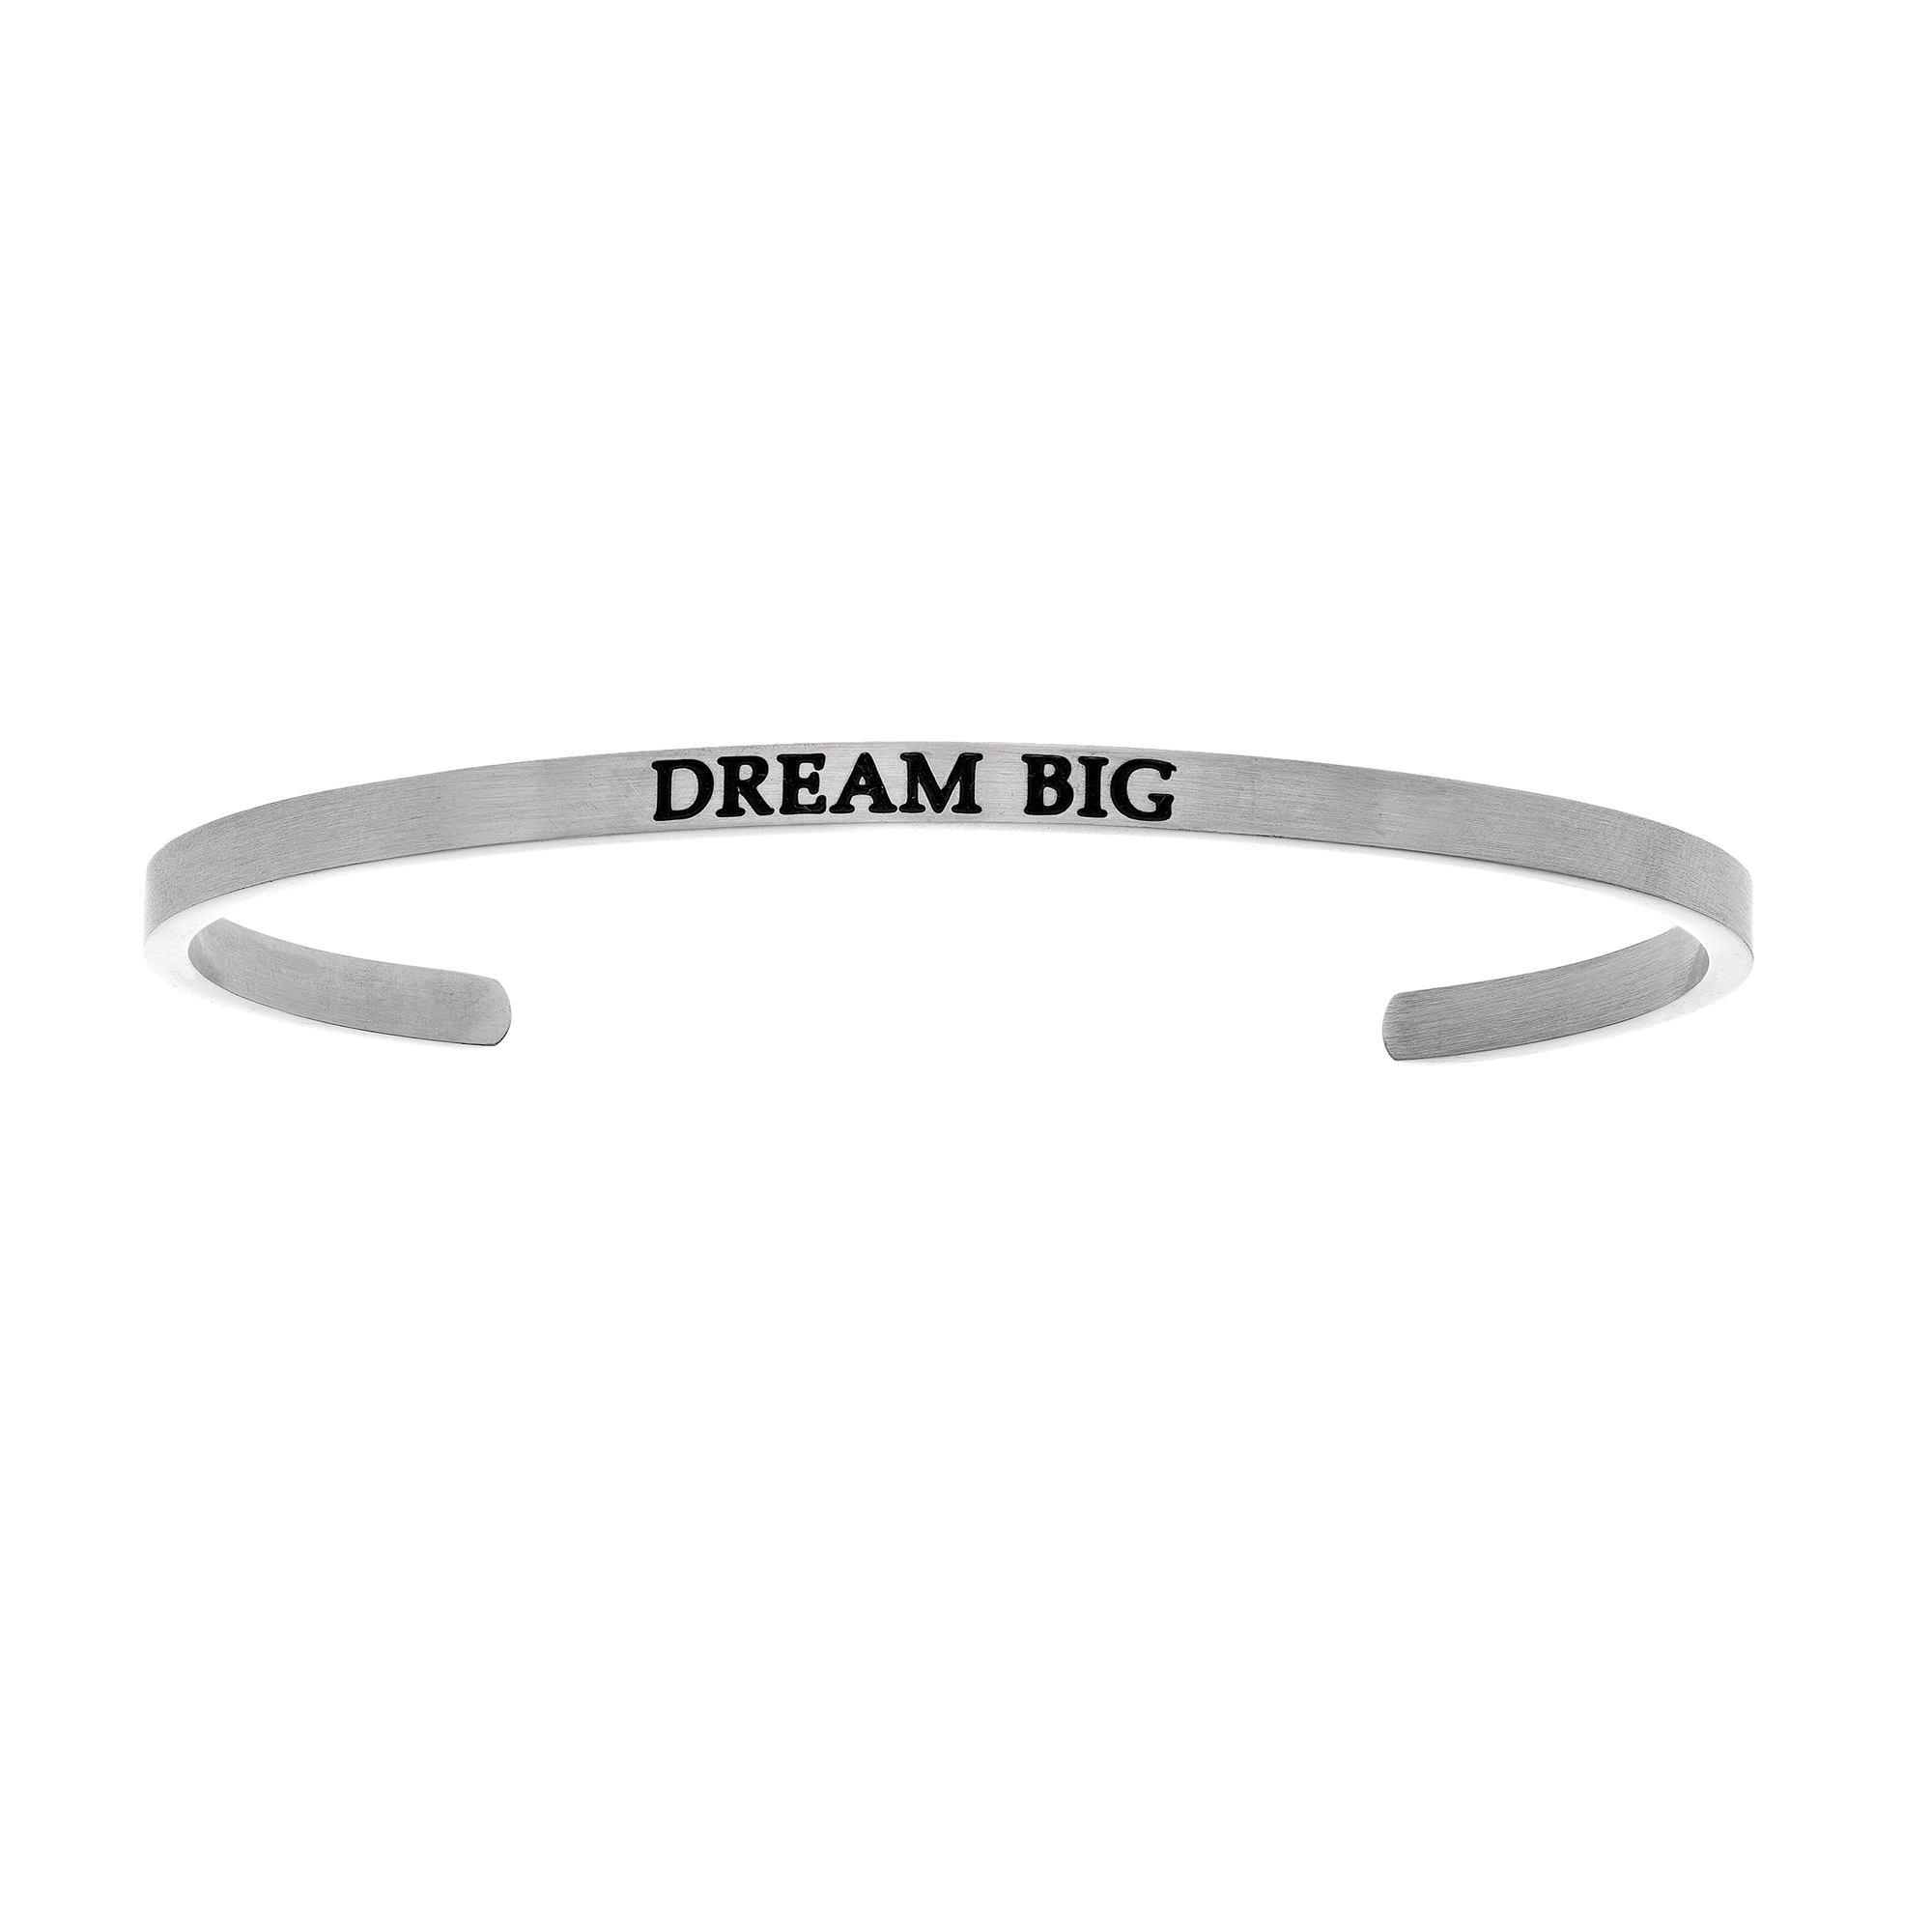 Intuitions Stainless Steel DREAM BIG Diamond Accent Cuff  Bangle Bracelet, 7  Each of these bracelets carries a personal message of inspiration, spirituality or just plain fun. Meant to be worn alone or stacked together for a smart, contemporary look, they're a great self-purchase or as a gift for family or friends. Intuitions are made of stainless steel and come in two styles standard cuff or friendship and fit practically any wrist. Intuitions Jewelry makes the difference in your daily life by designing and creating bracelets and bangles with motivational quotes to inspire you and your loved ones. Giving back $.25 of each bracelet to BABY2BABY